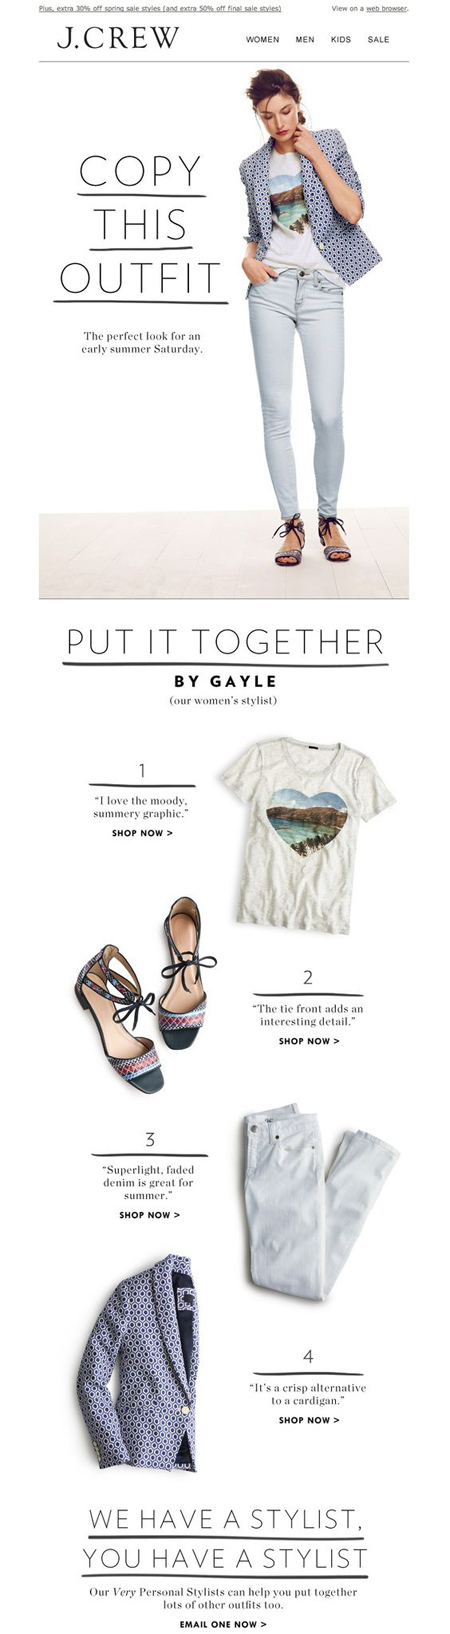 j-crew-copy-this-outfit